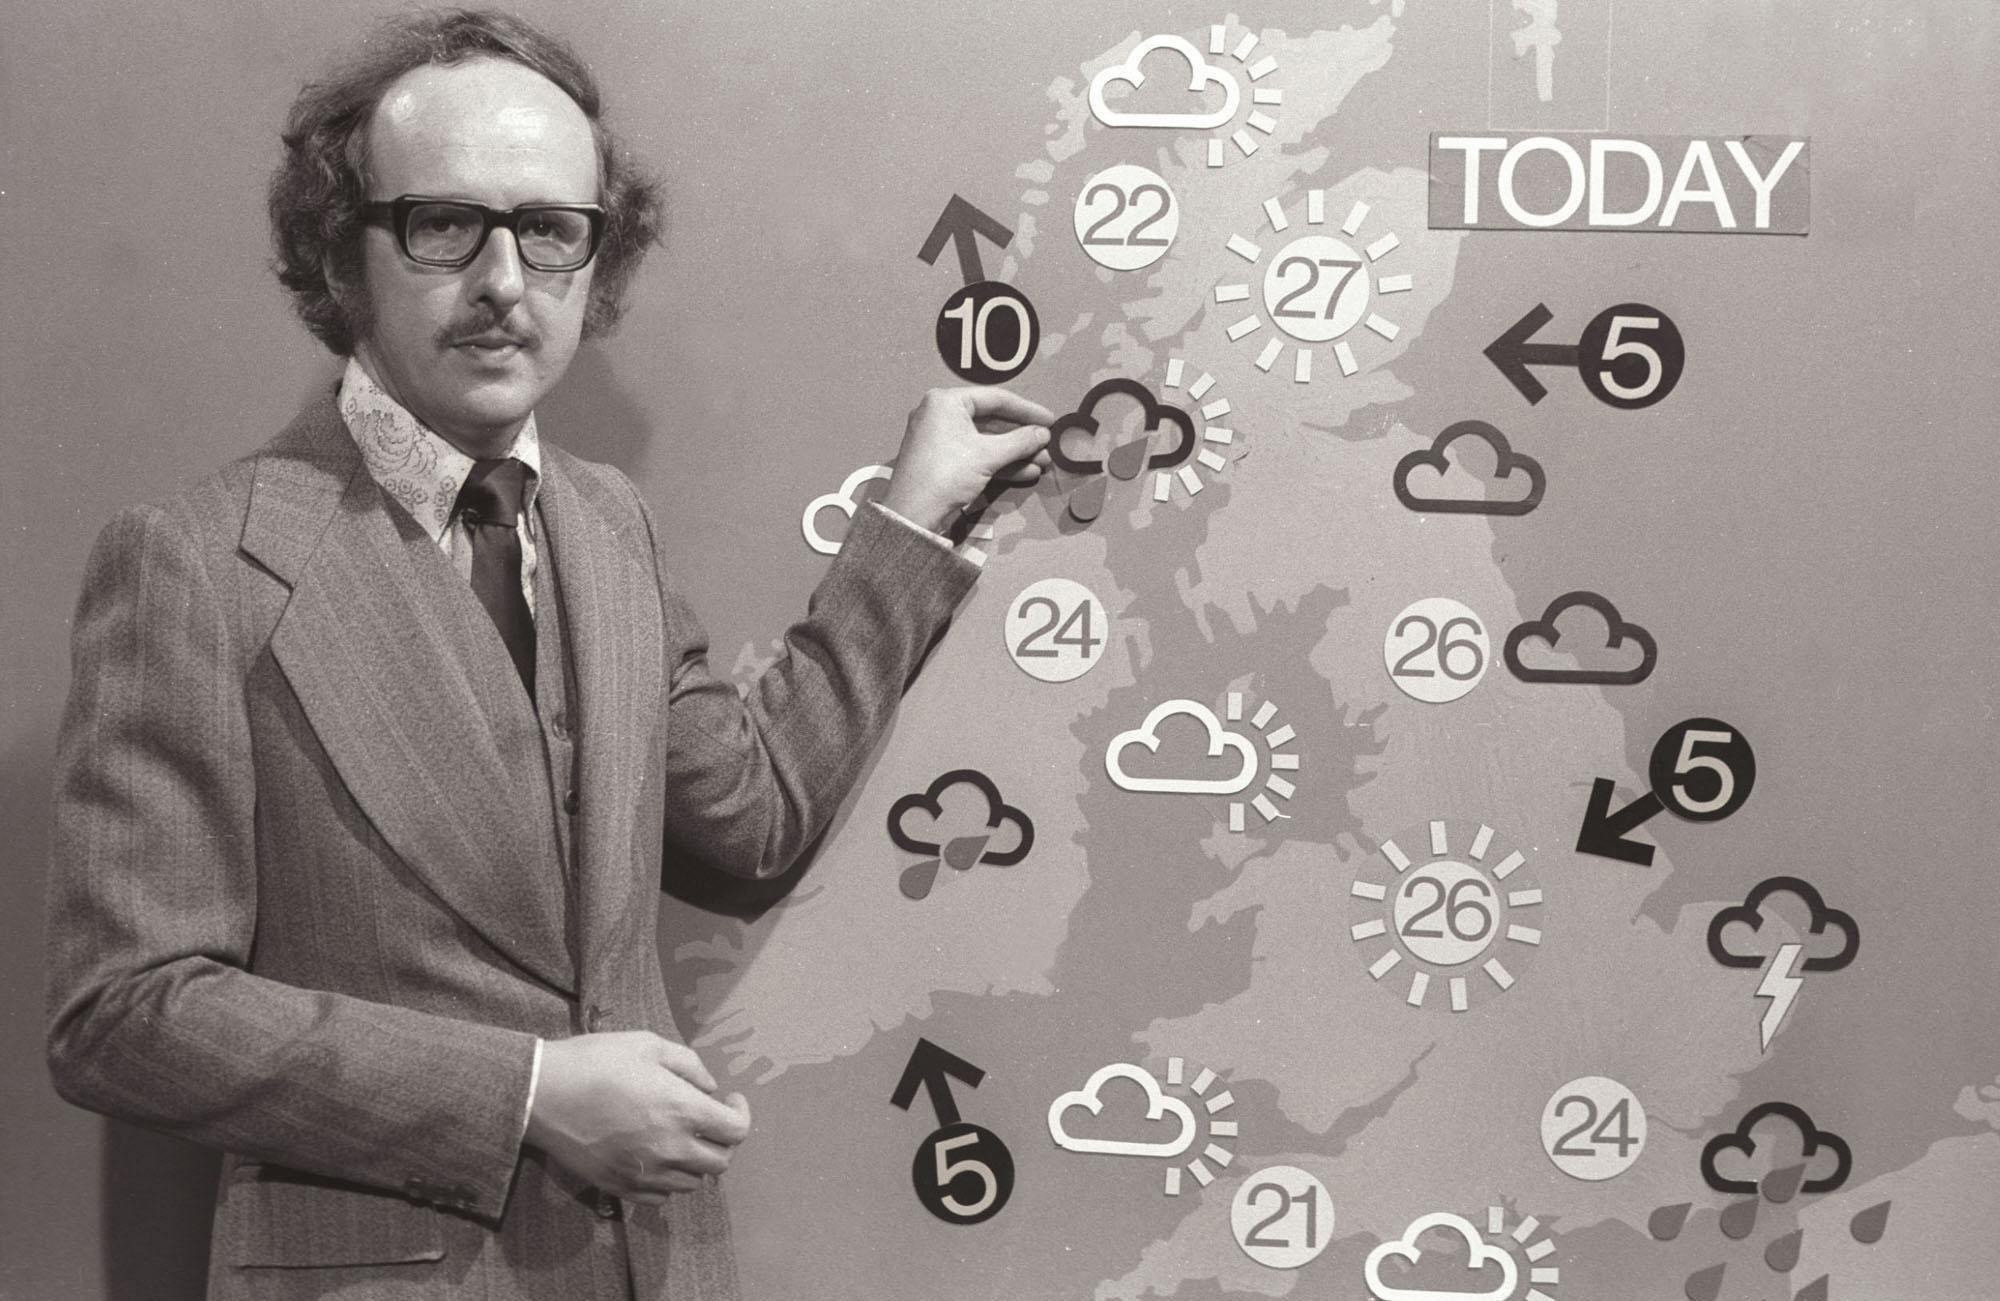 Weatherman Michael Fish (BBC)